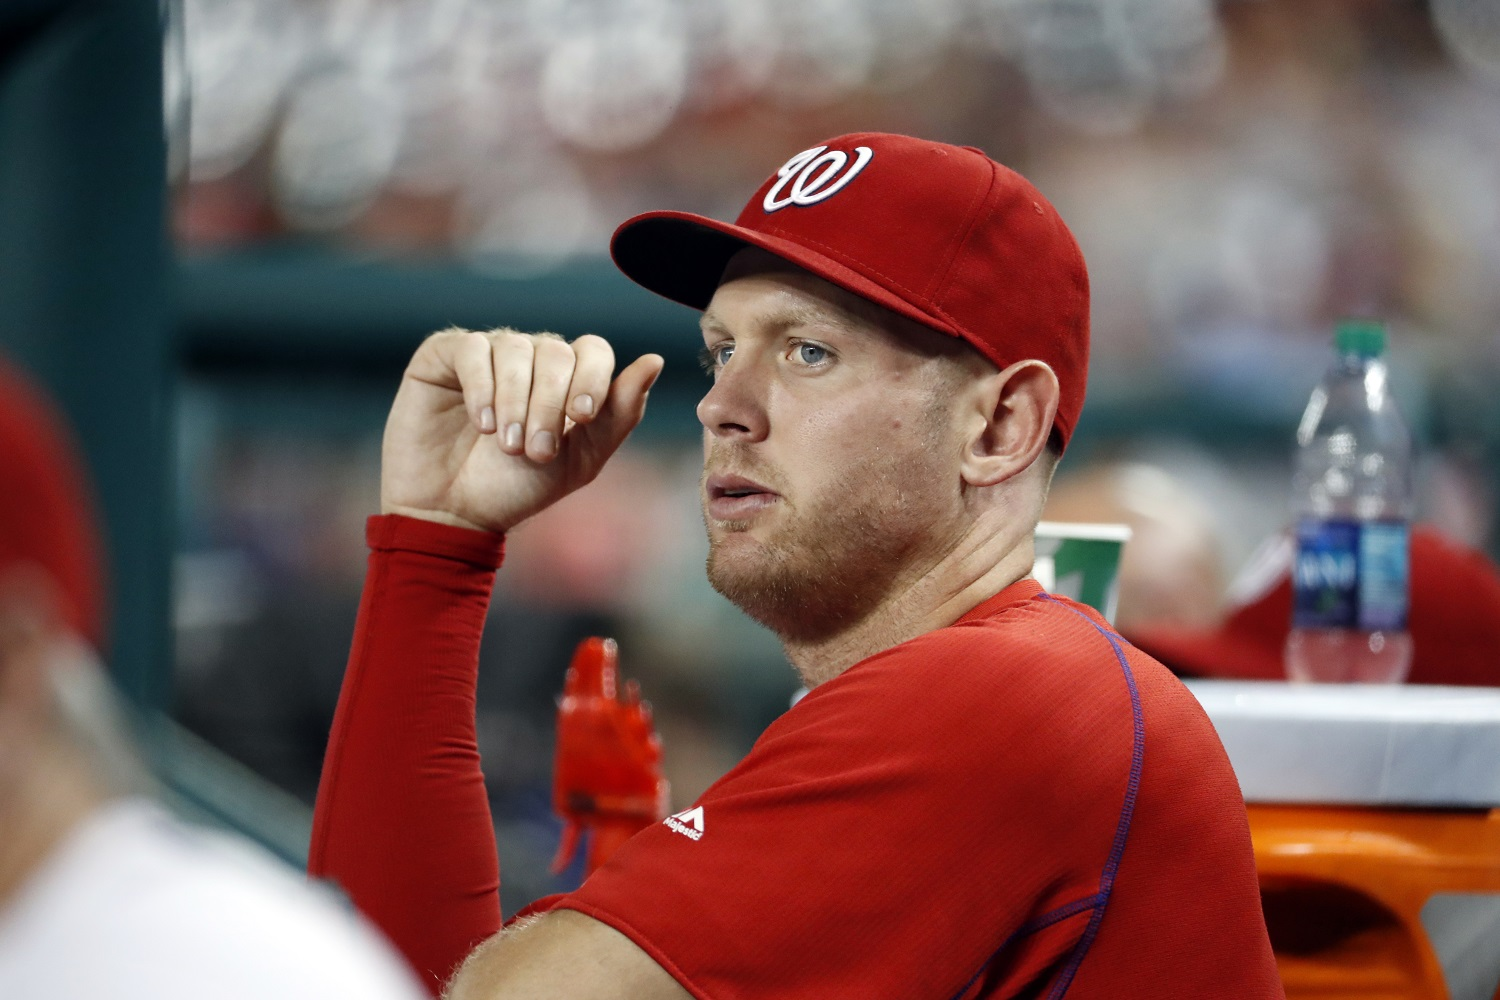 Washington Nationals starting pitcher Stephen Strasburg pauses in the dugout during a baseball game against the Philadelphia Phillies at Nationals Park, Thursday, Sept. 8, 2016, in Washington. Strasburg left Wednesday's game with an injury. The Phillies won 4-1. (AP Photo/Alex Brandon)